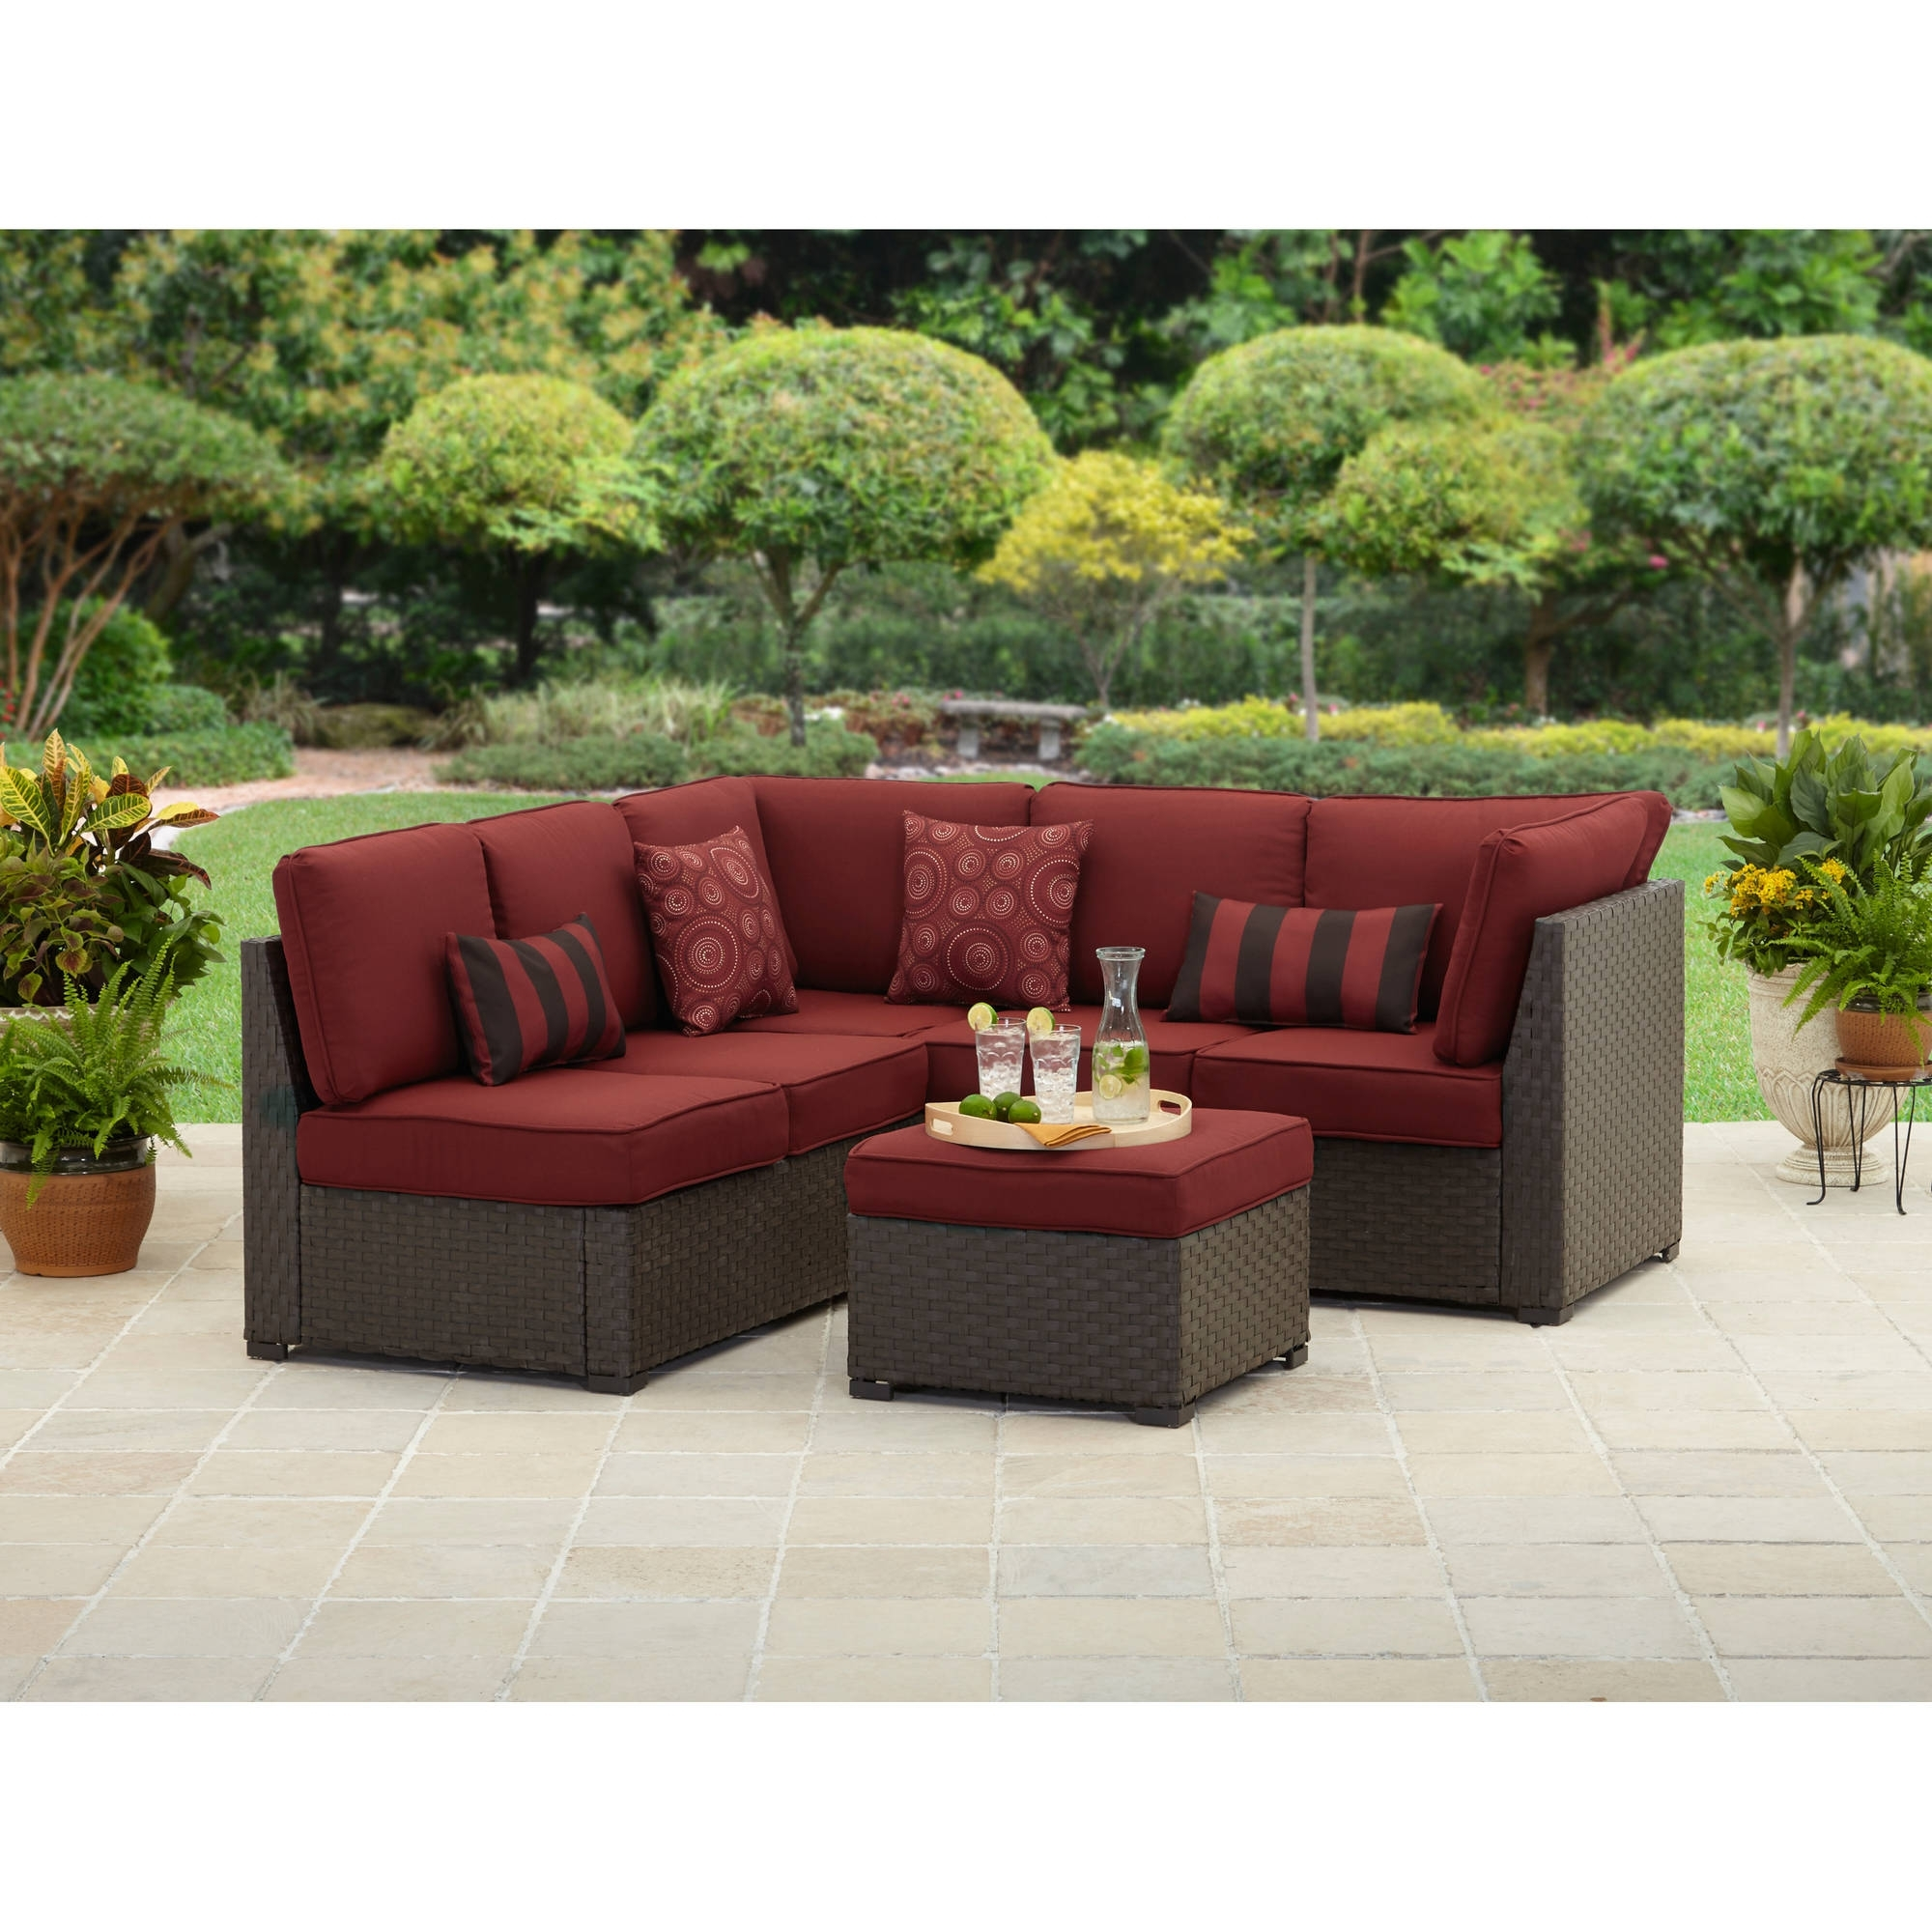 Better Homes And Gardens Rush Valley 3 Piece Outdoor Sectional Regarding Most Popular Patio Conversation Sets With Cushions (View 2 of 15)